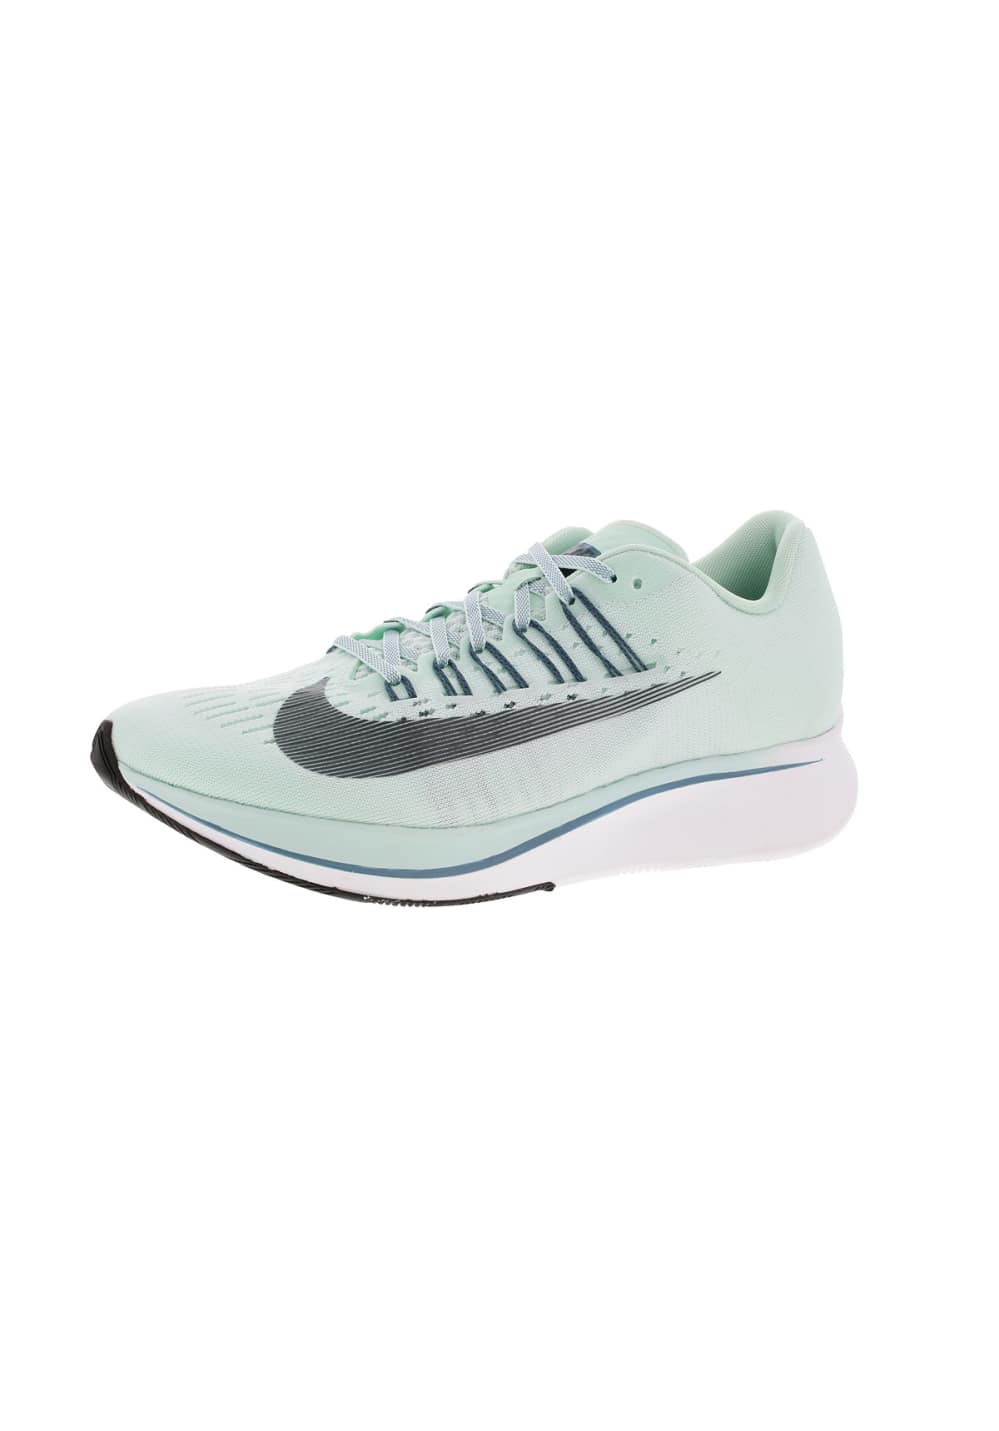 fc2196f4ff2 Next. -60%. Nike. Zoom Fly - Running shoes for Women